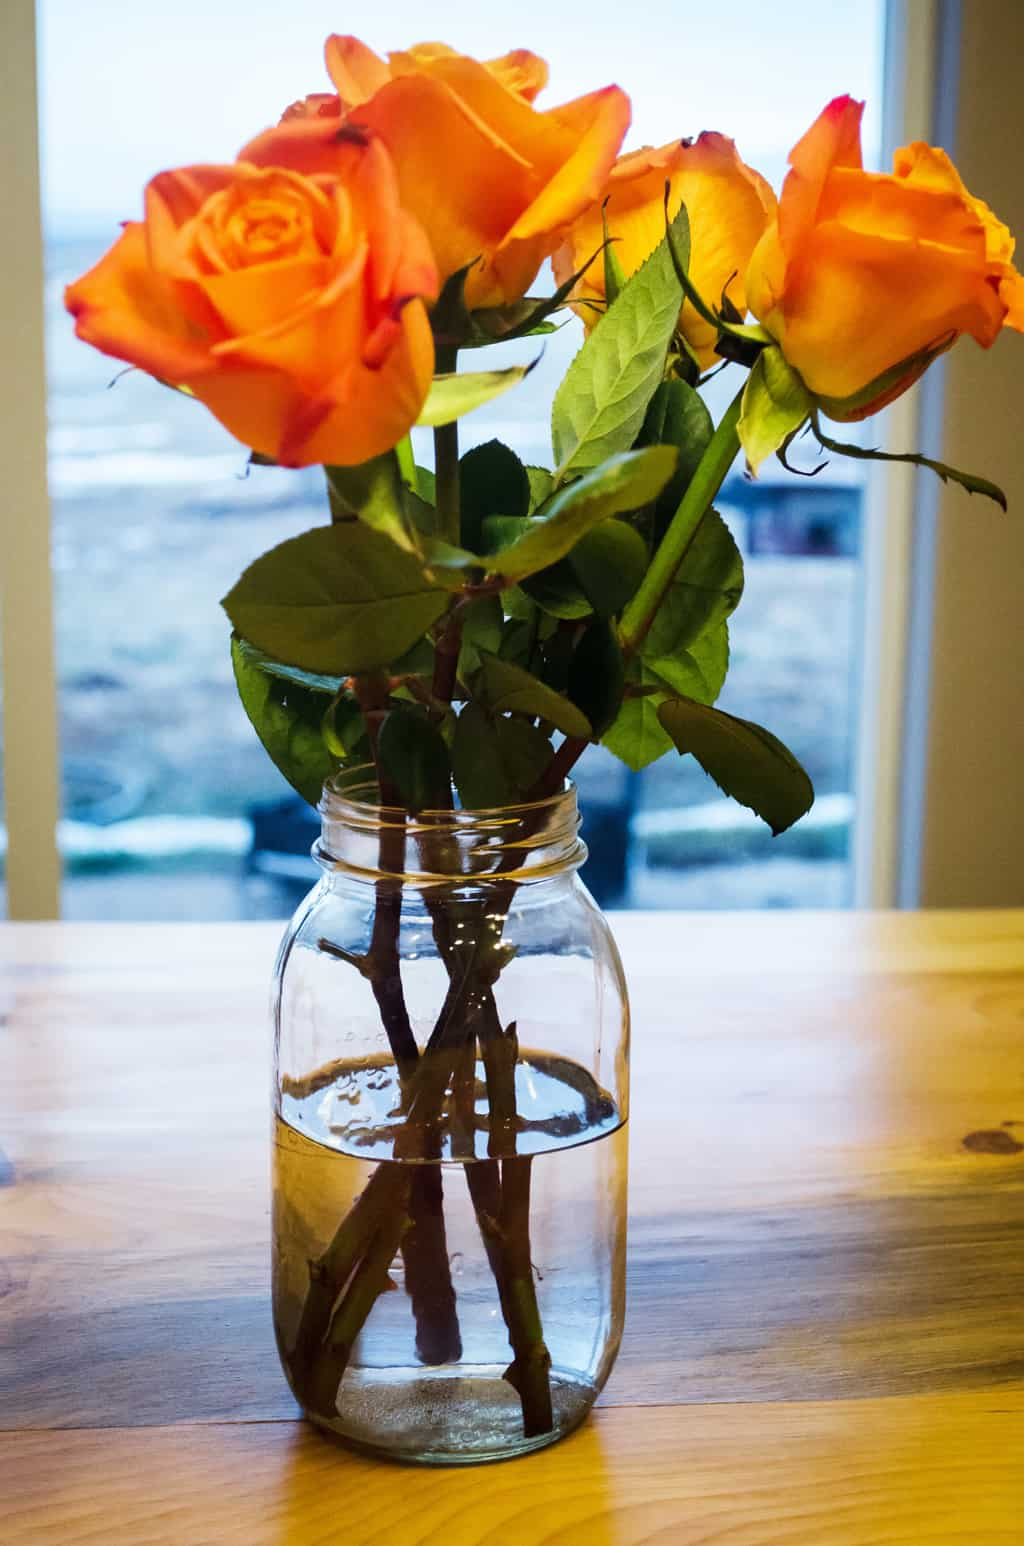 photo of mason jar vase with orange flowers on a wood table